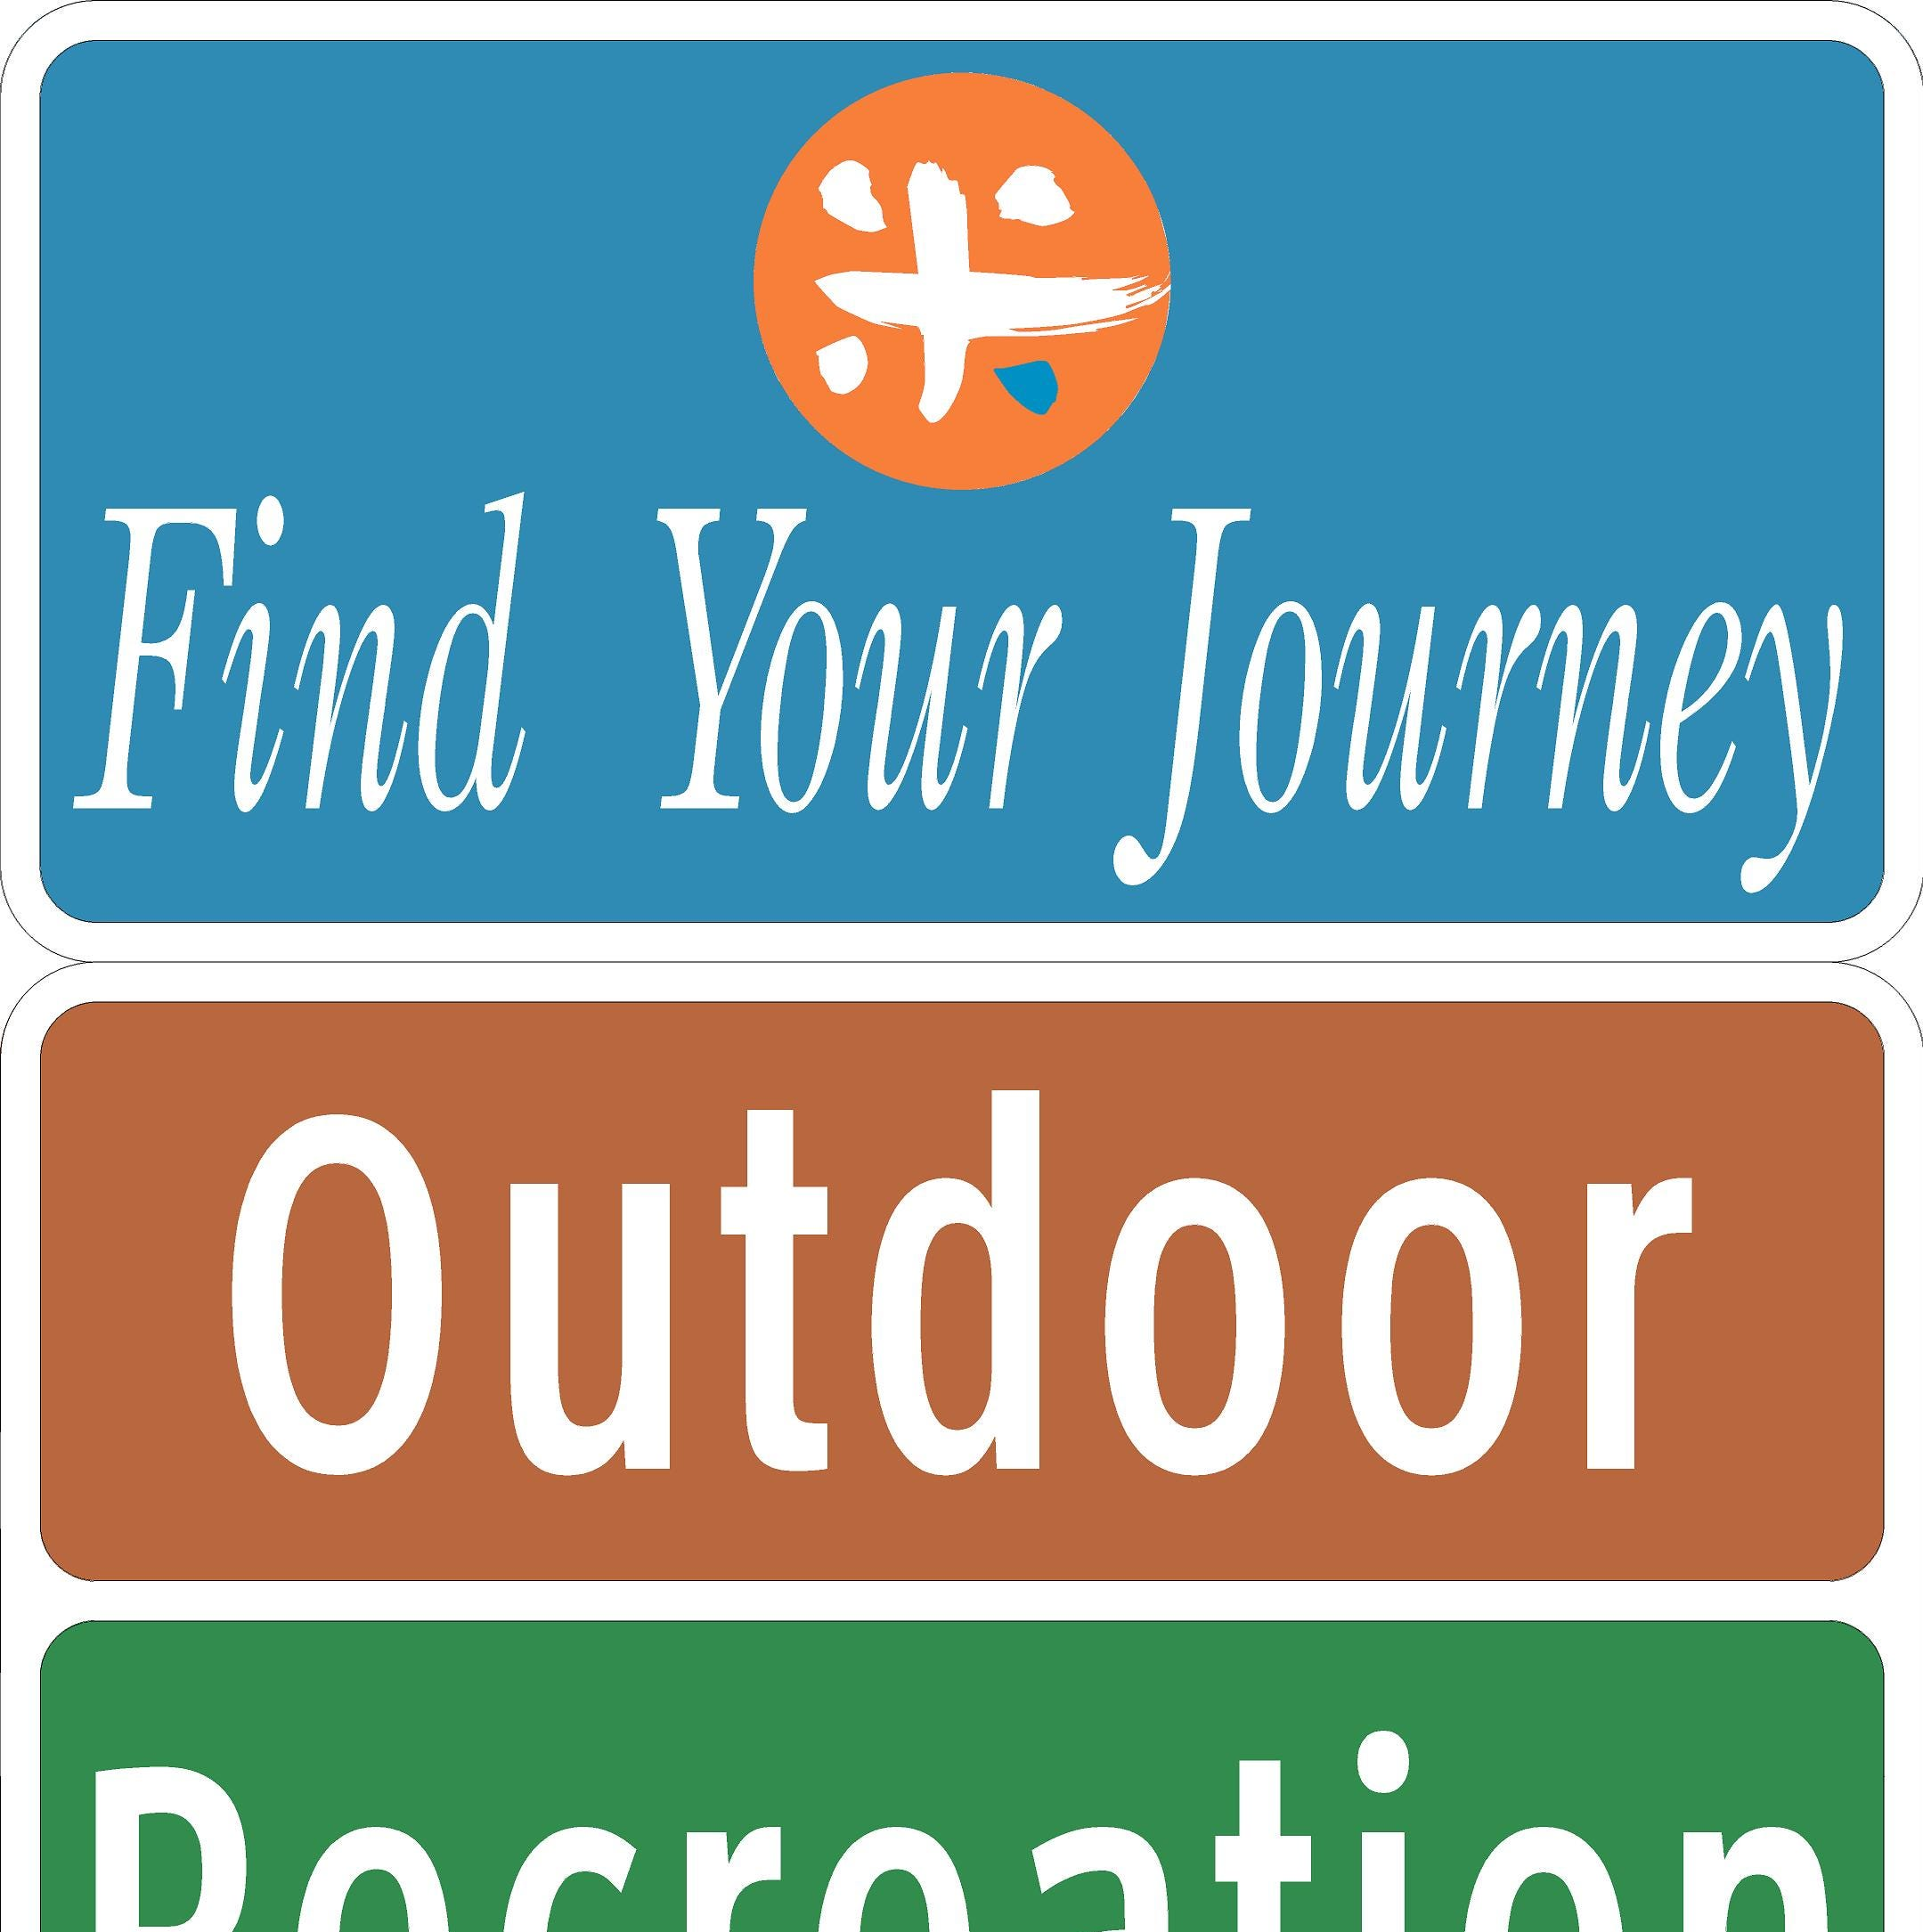 New signs will direct people to Farmington attractions